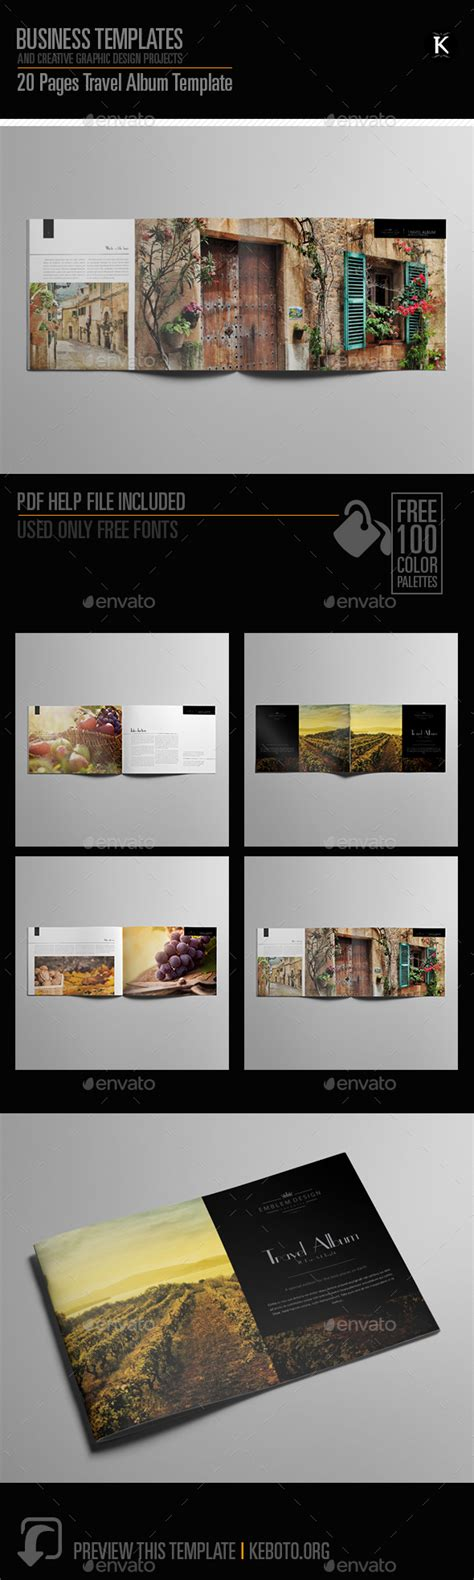 20 Pages Travel Album Template By Keboto Graphicriver Travel Album Template